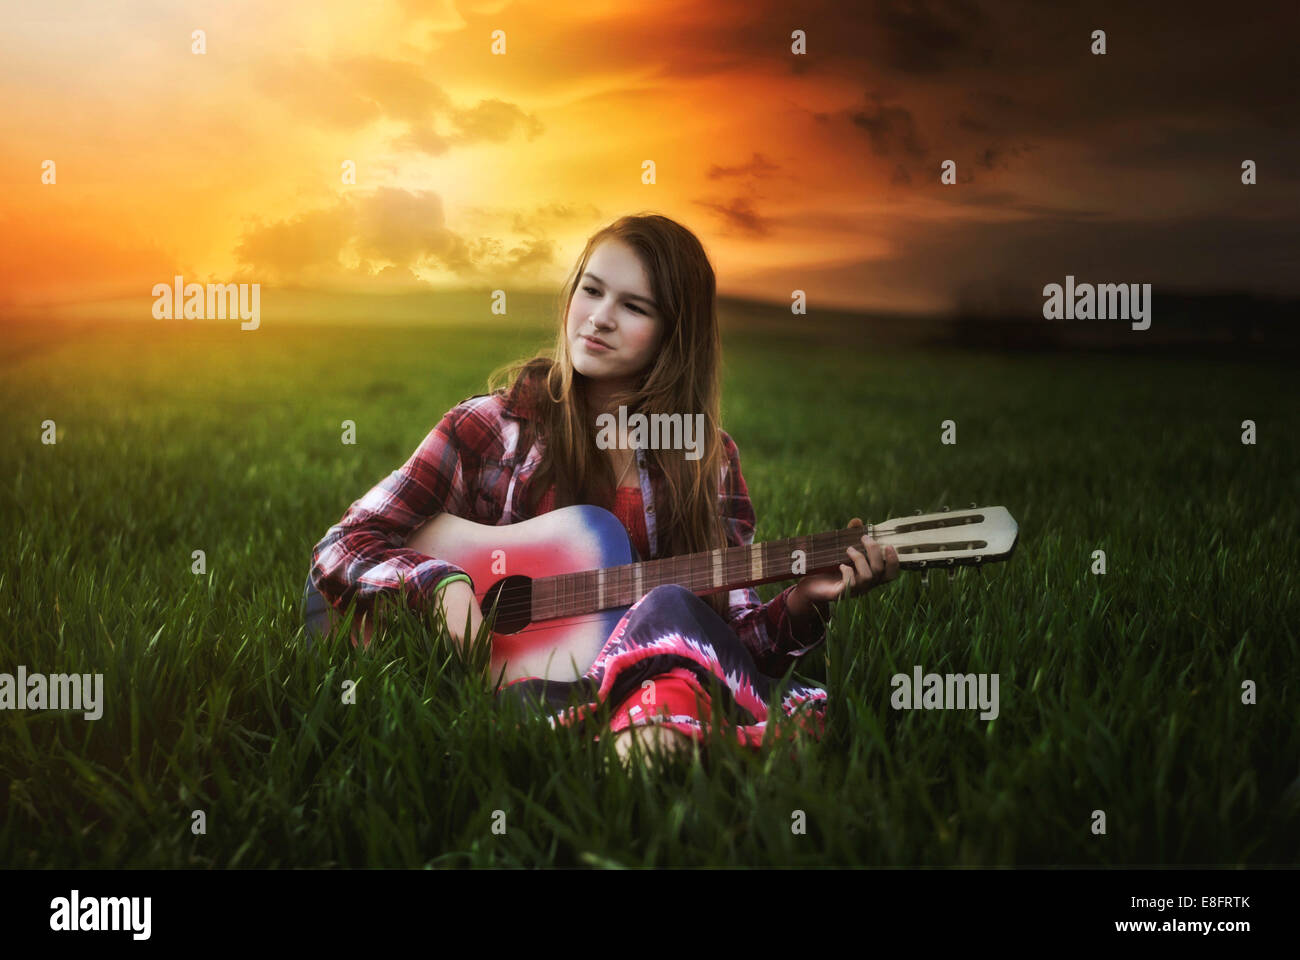 Girl sitting in field at sunset playing guitar - Stock Image